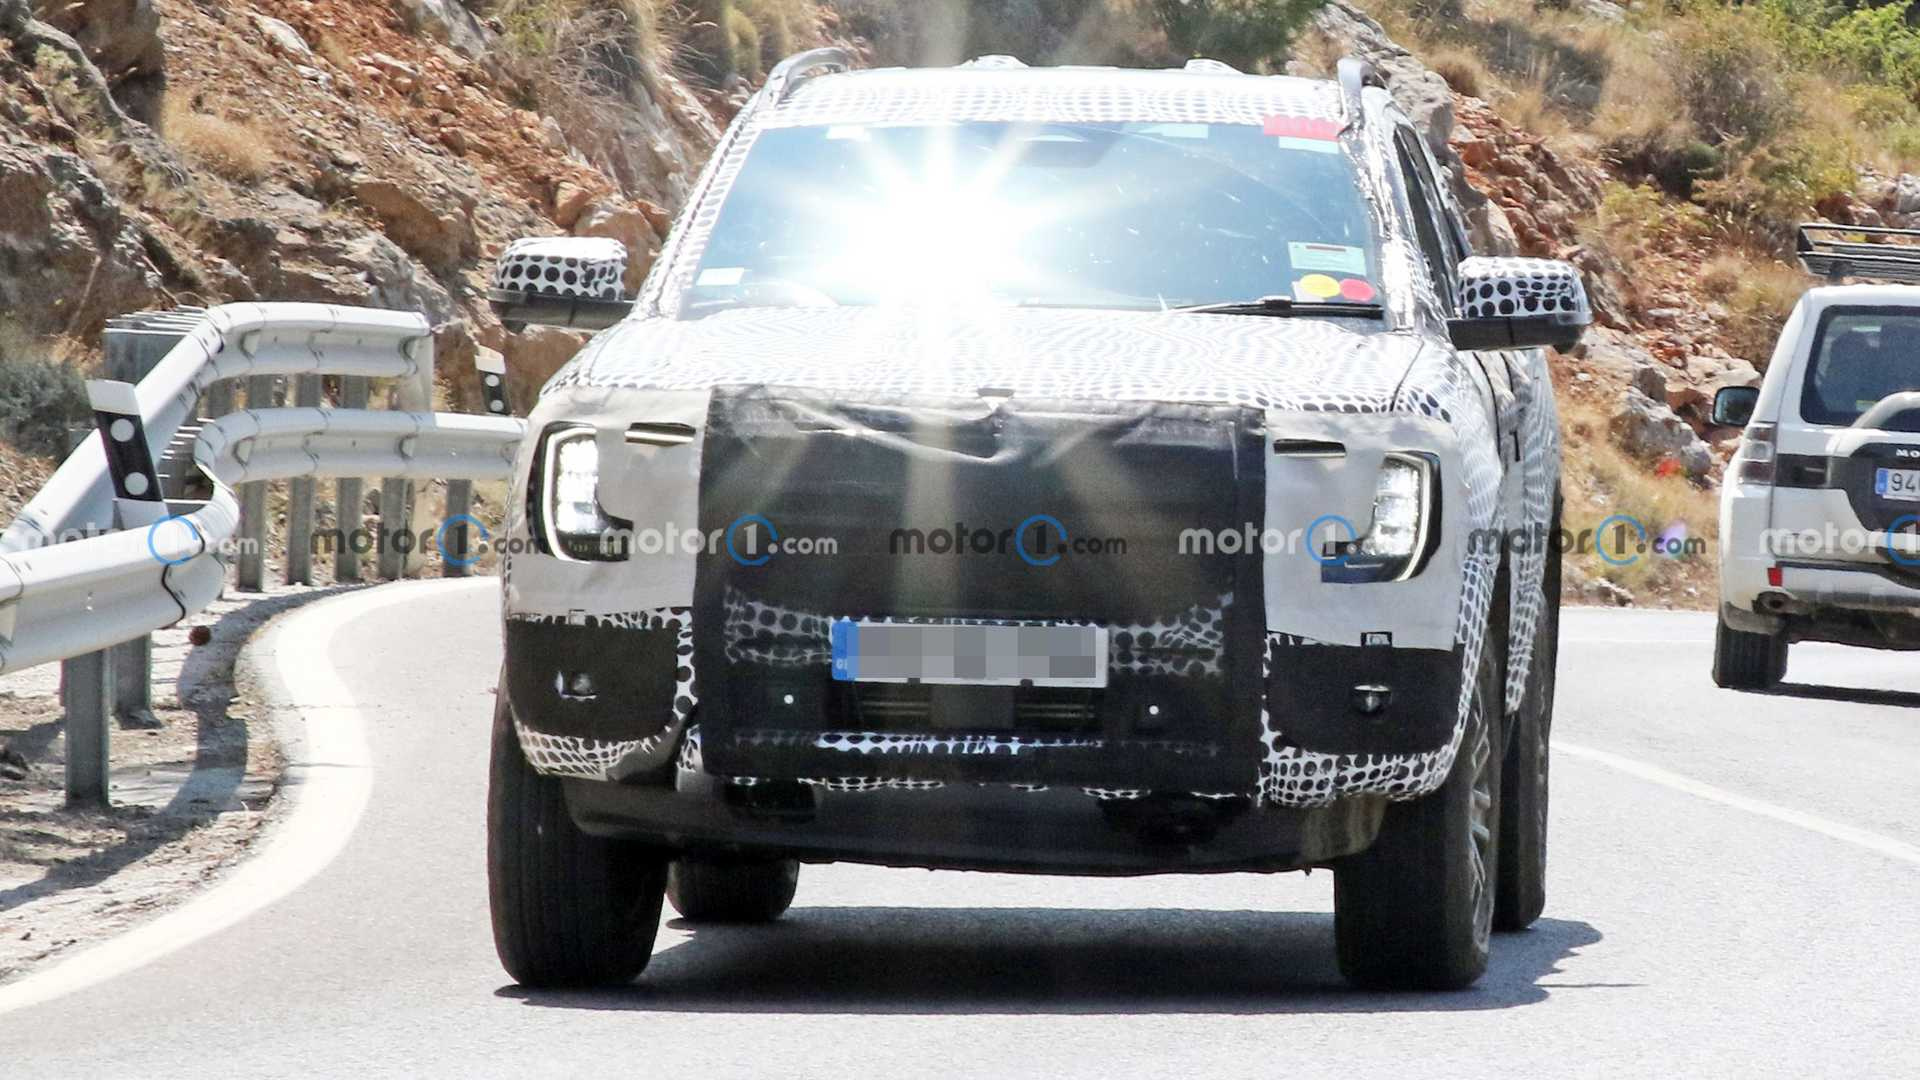 2023 Ford Ranger Front View Spy Photo